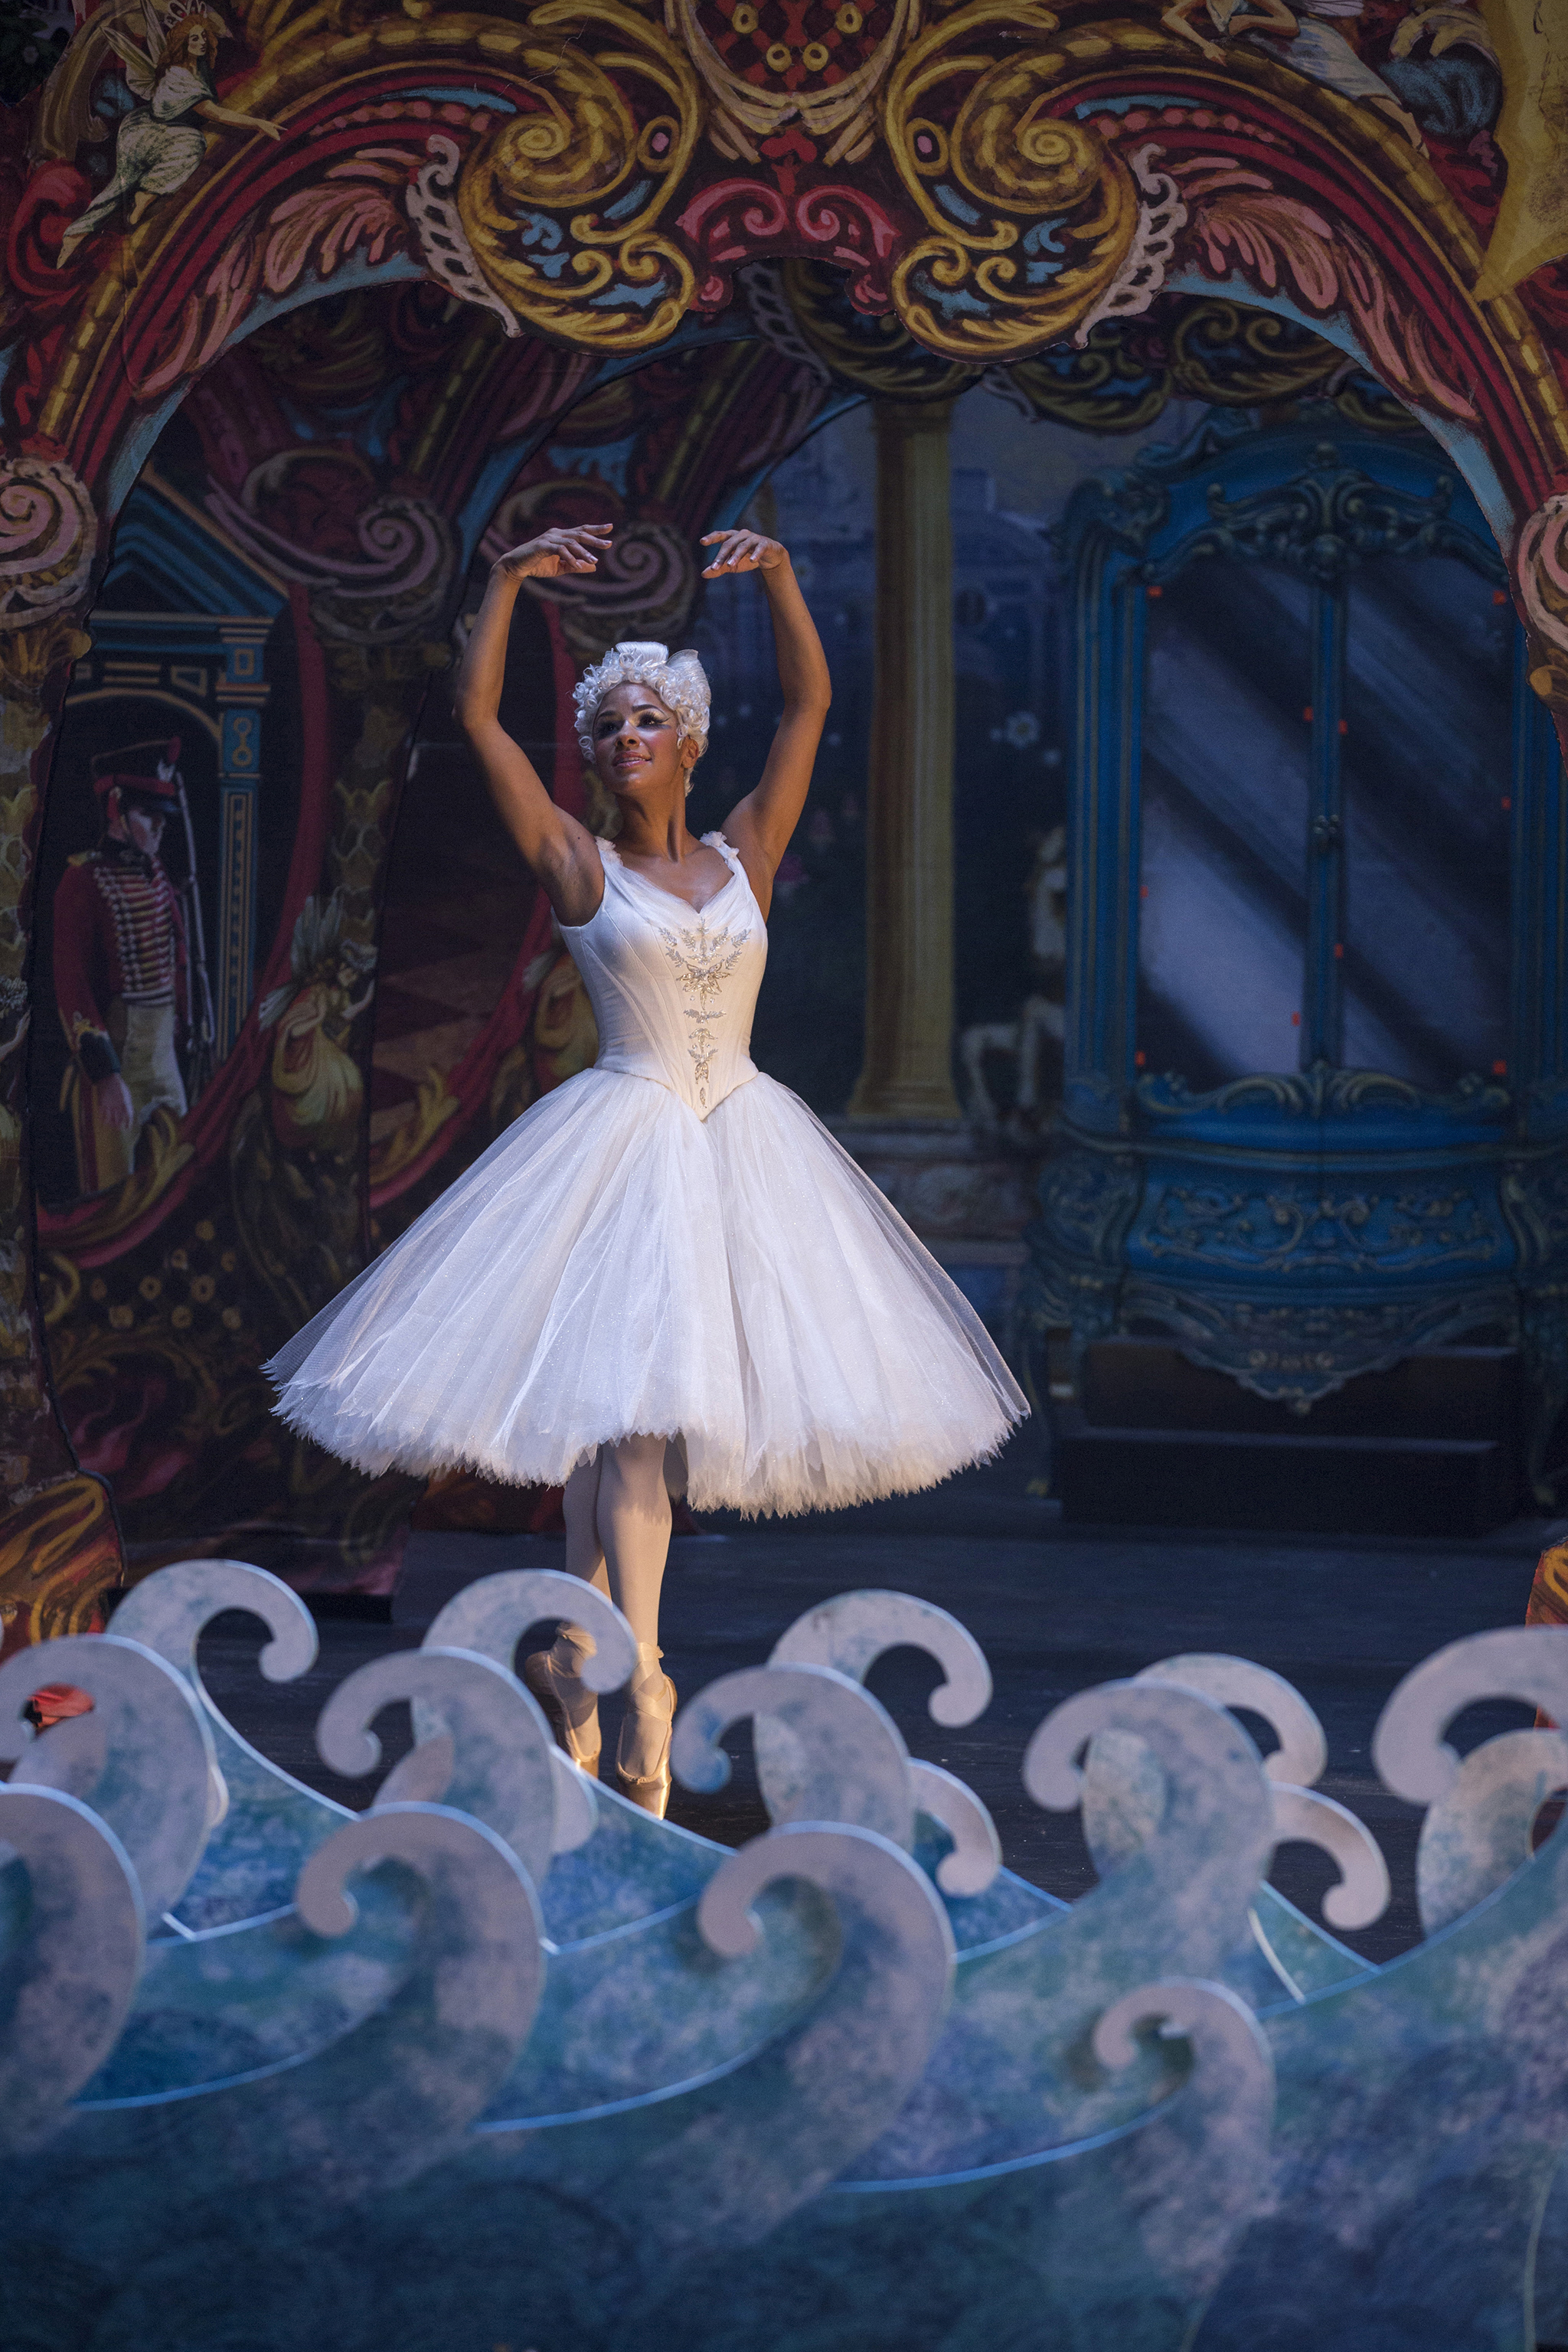 Interview With Ballerina Misty Copeland From The Nutcracker And The Four Realms